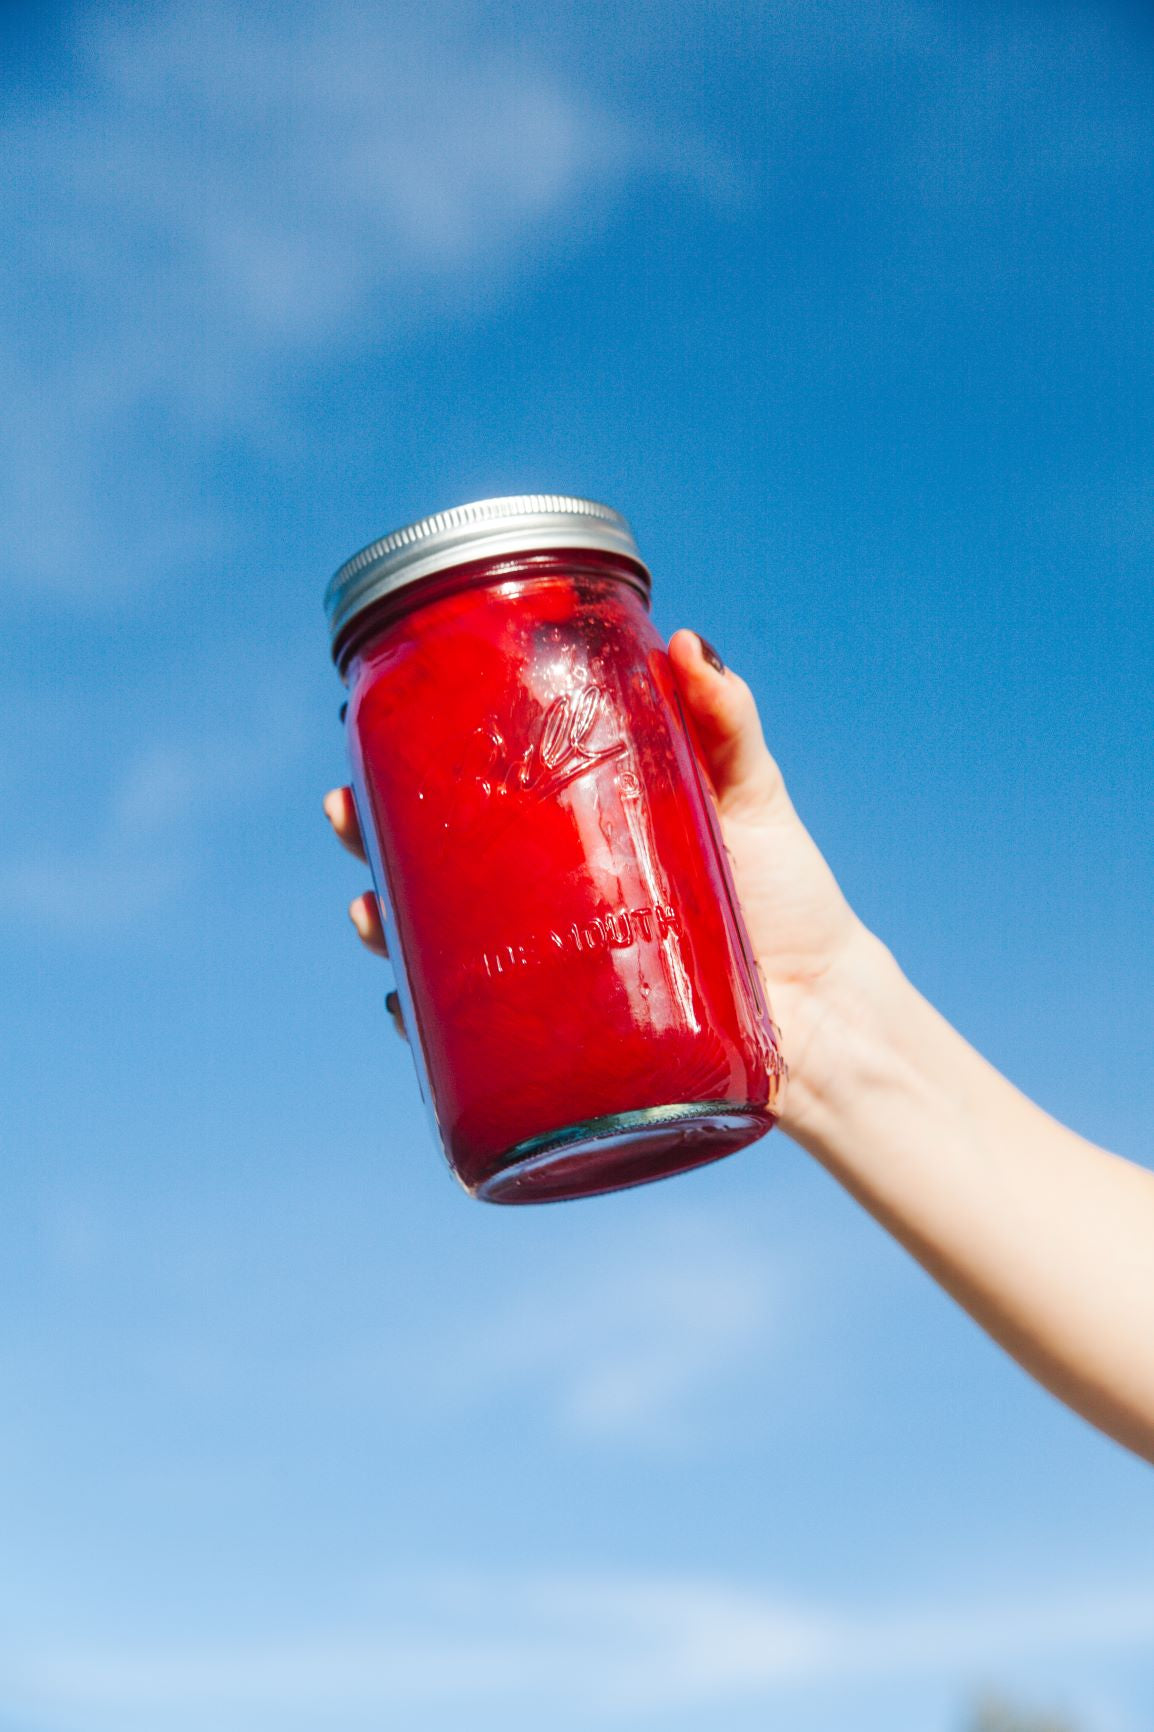 Why People Use Beet Juice As A Pre-Workout